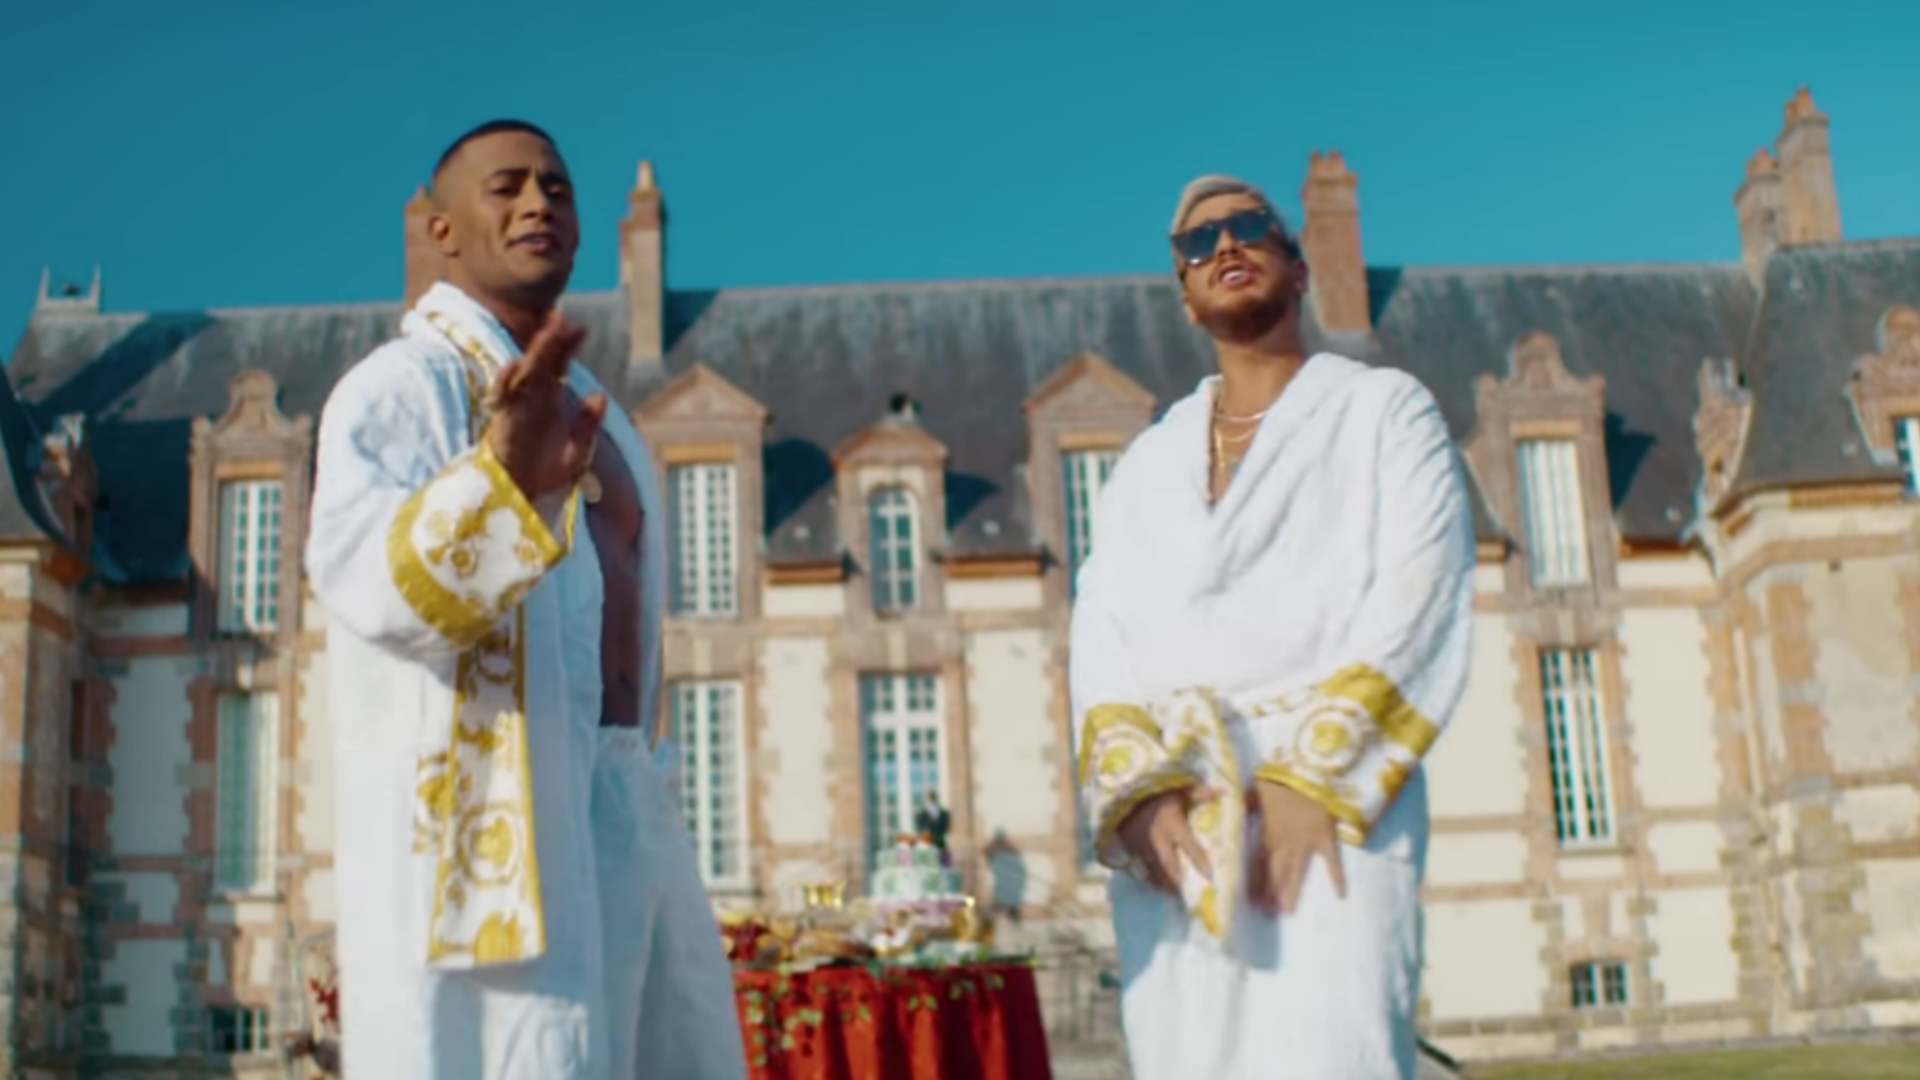 Mohamed Ramadan and Saad Lamjarred From Rags to Riches in New Music Video 'Ensay'